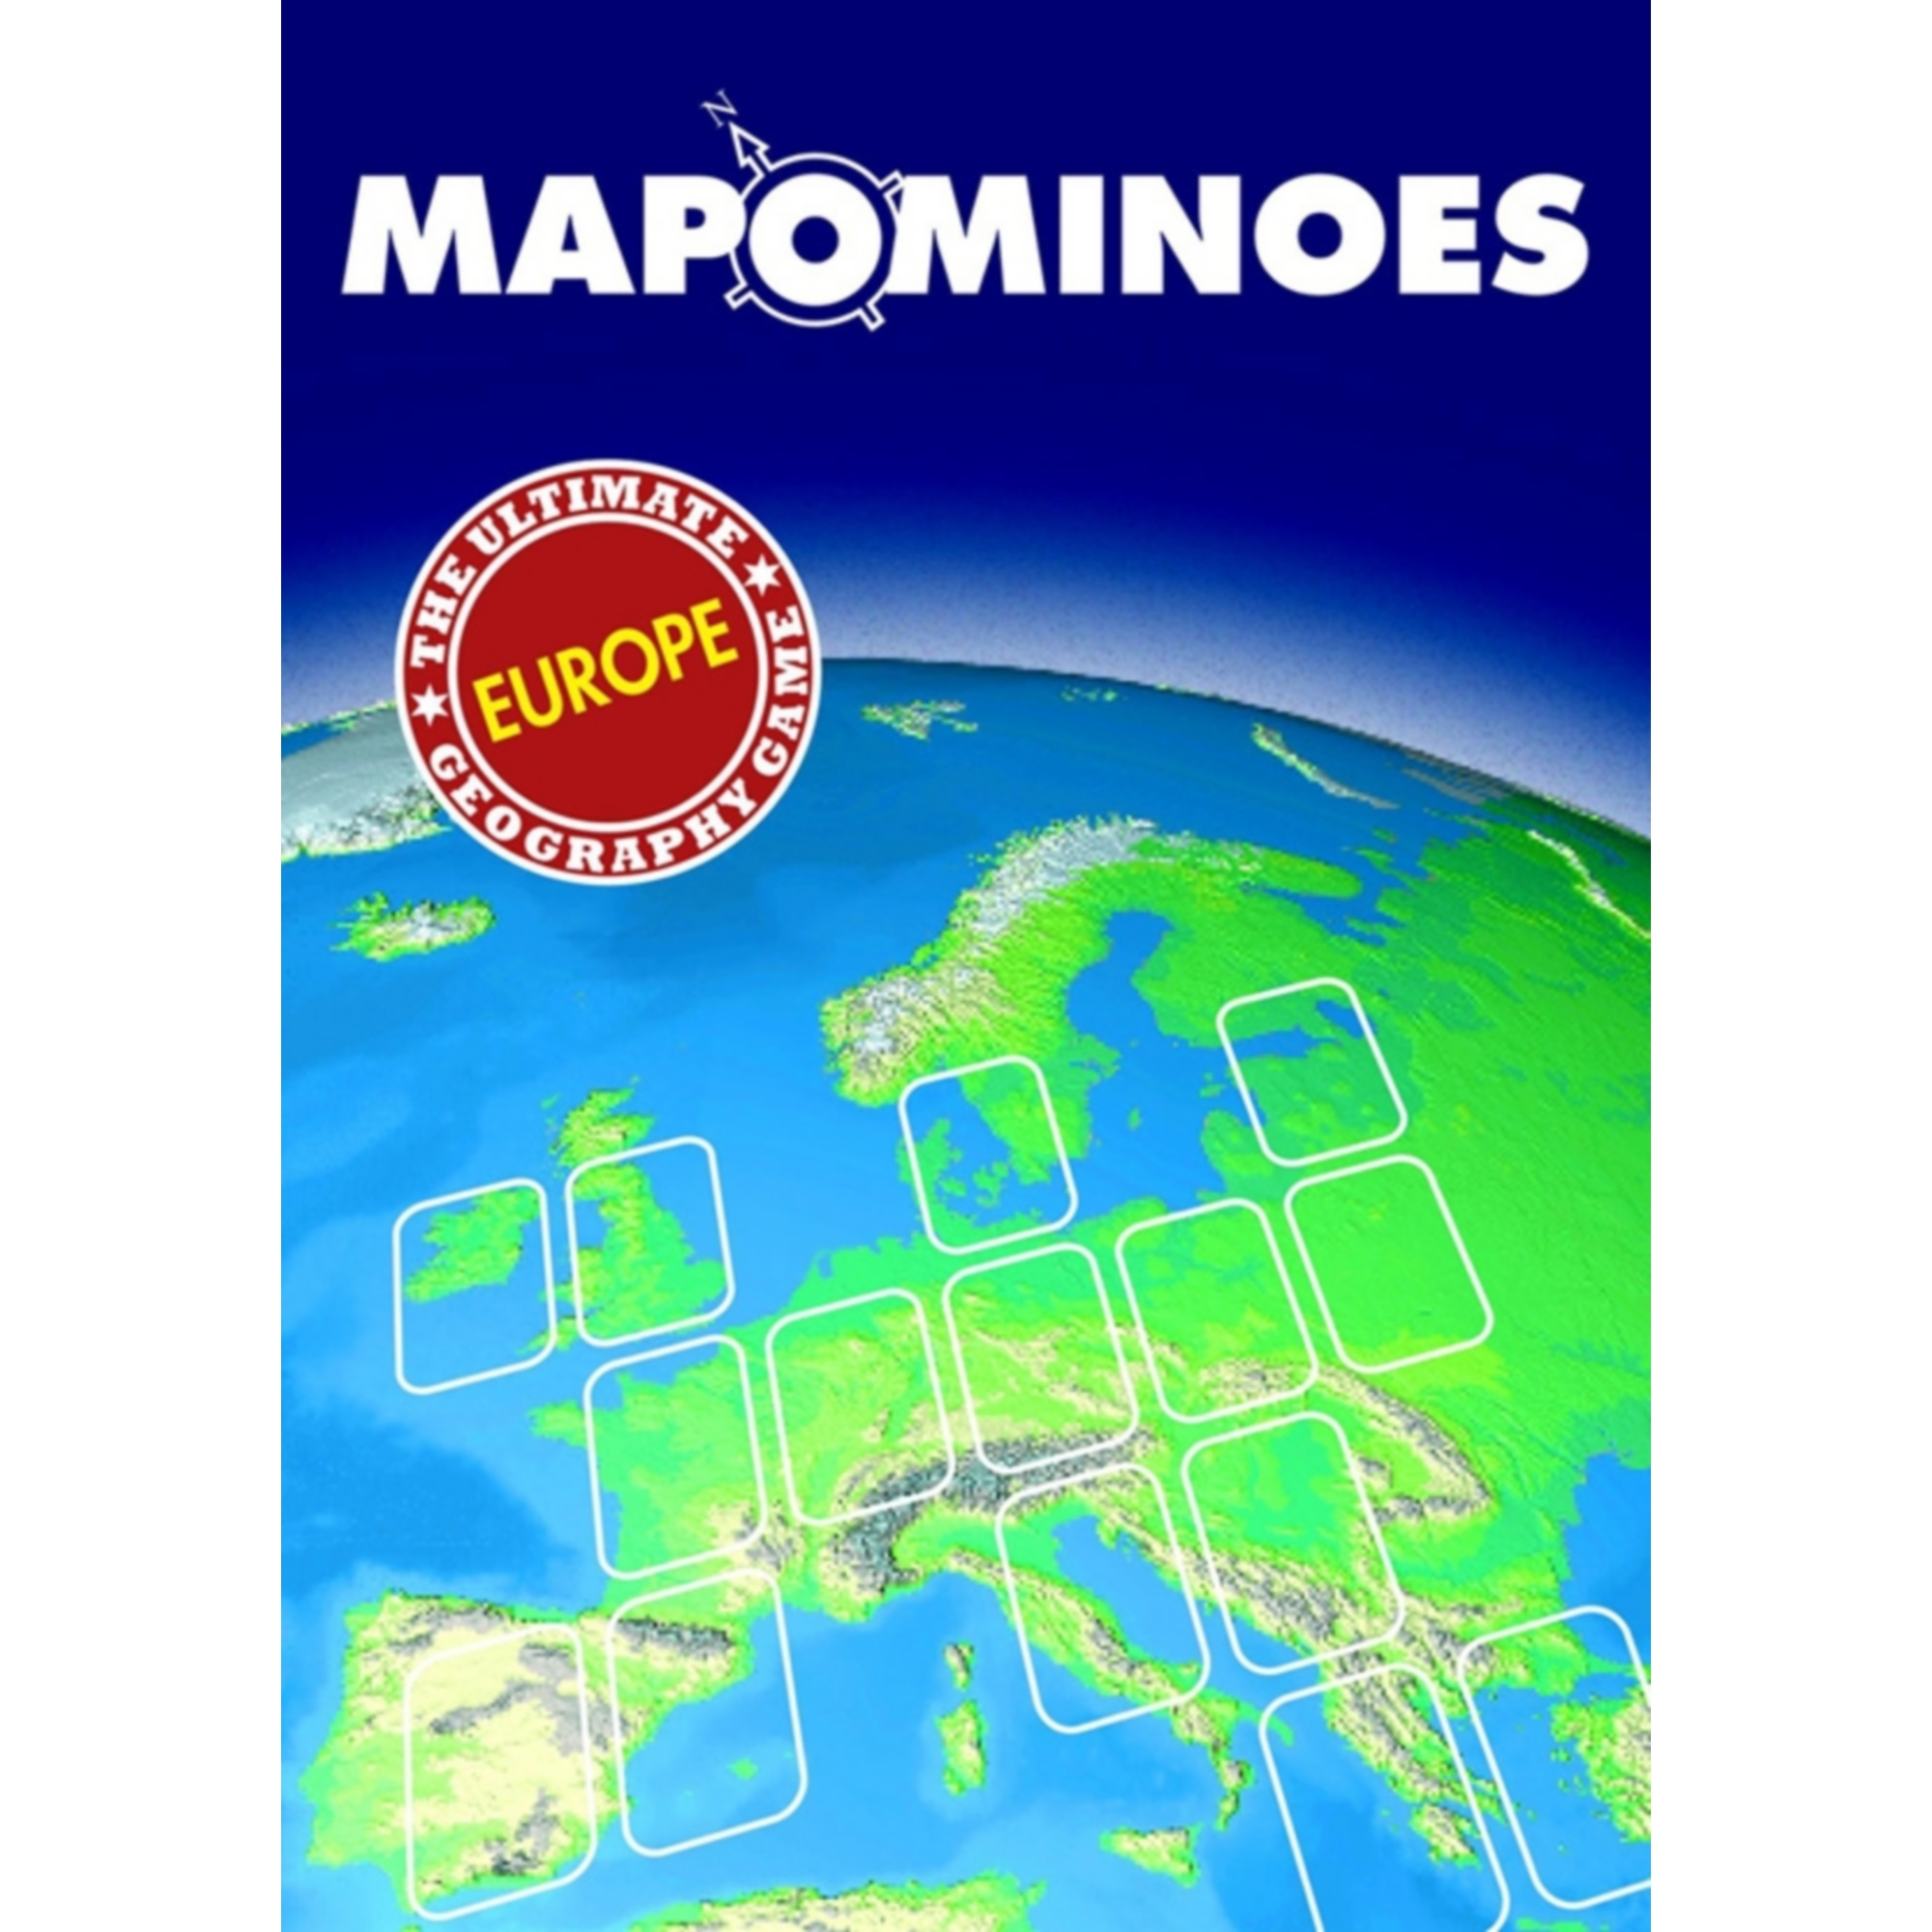 Mapominoes The Ultimate Geography Game